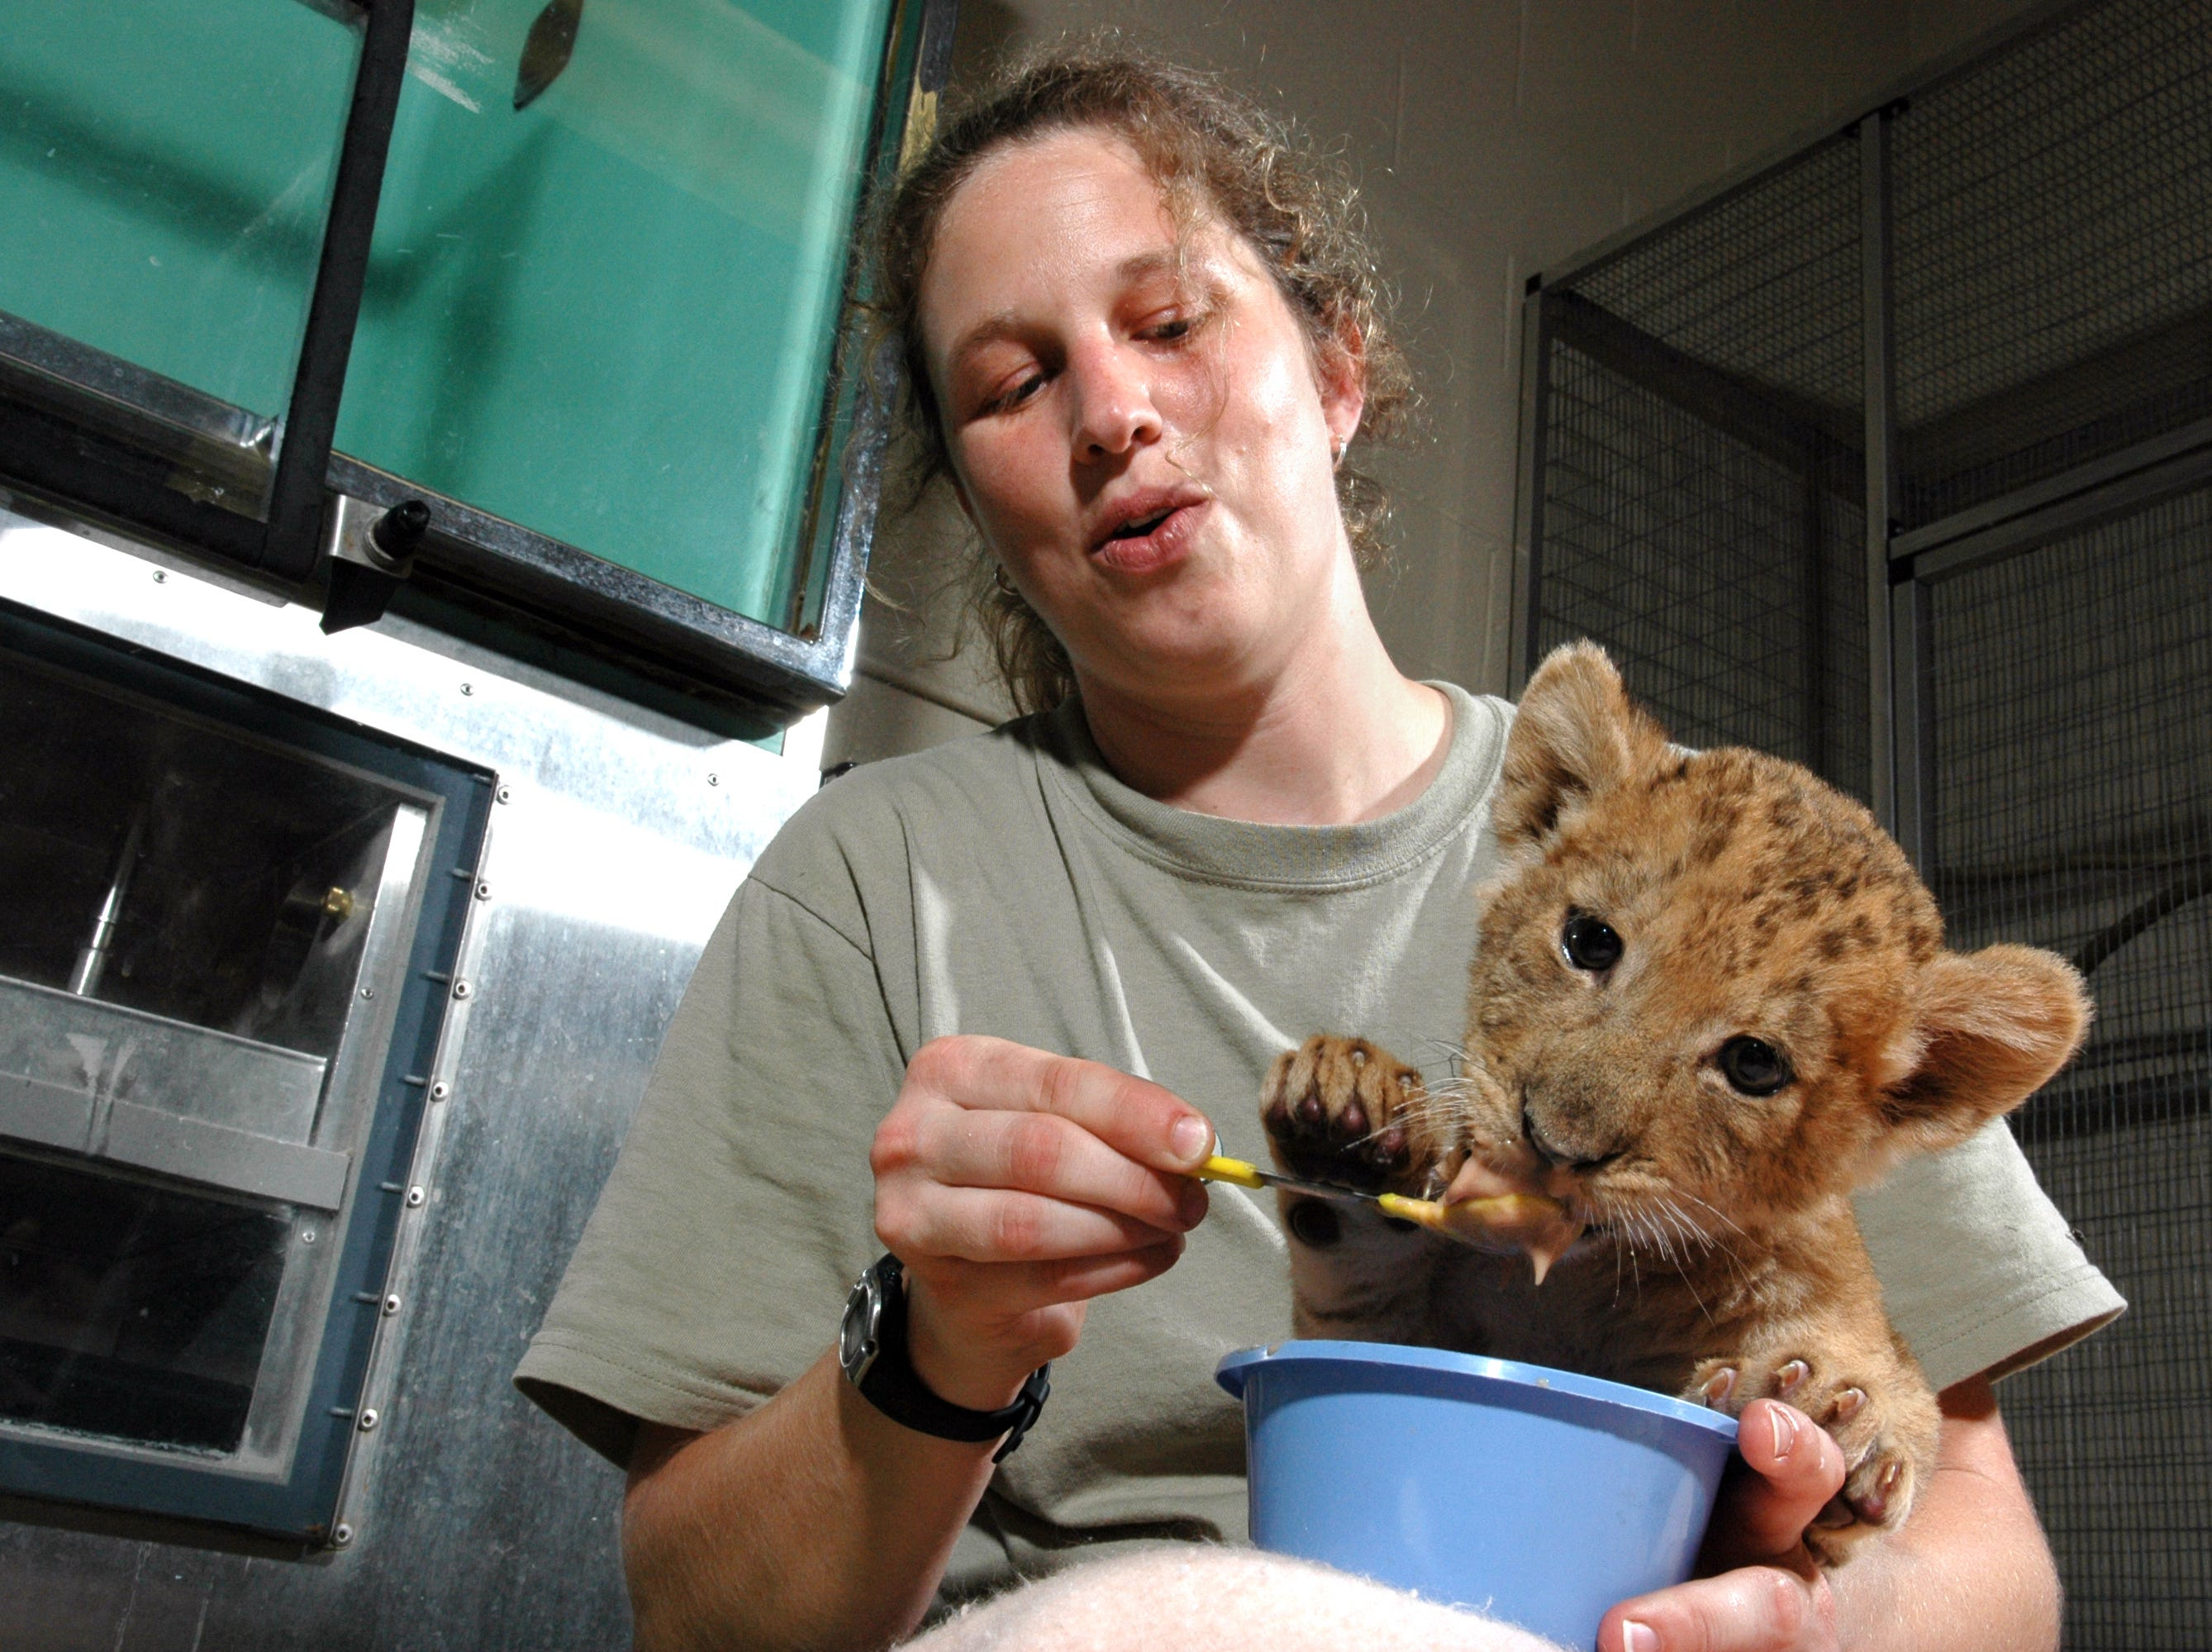 "Zookeeper Kelly Creswell works in the carnivore section at the Knoxville Zoo, taking care of the wolves, big cats and African wild dogs. Her new assignment is to hand-raise a female lion cub in the hope it can be re-introduced to its mother at a later date. ""I never thought I would be hand-raising a lion cub ... it's certainly an honor to be trusted to hand-raise a lion cub, but we would have much rather have had her being raised by her mom."" The challenge is to raise it with as little human interaction as possible.